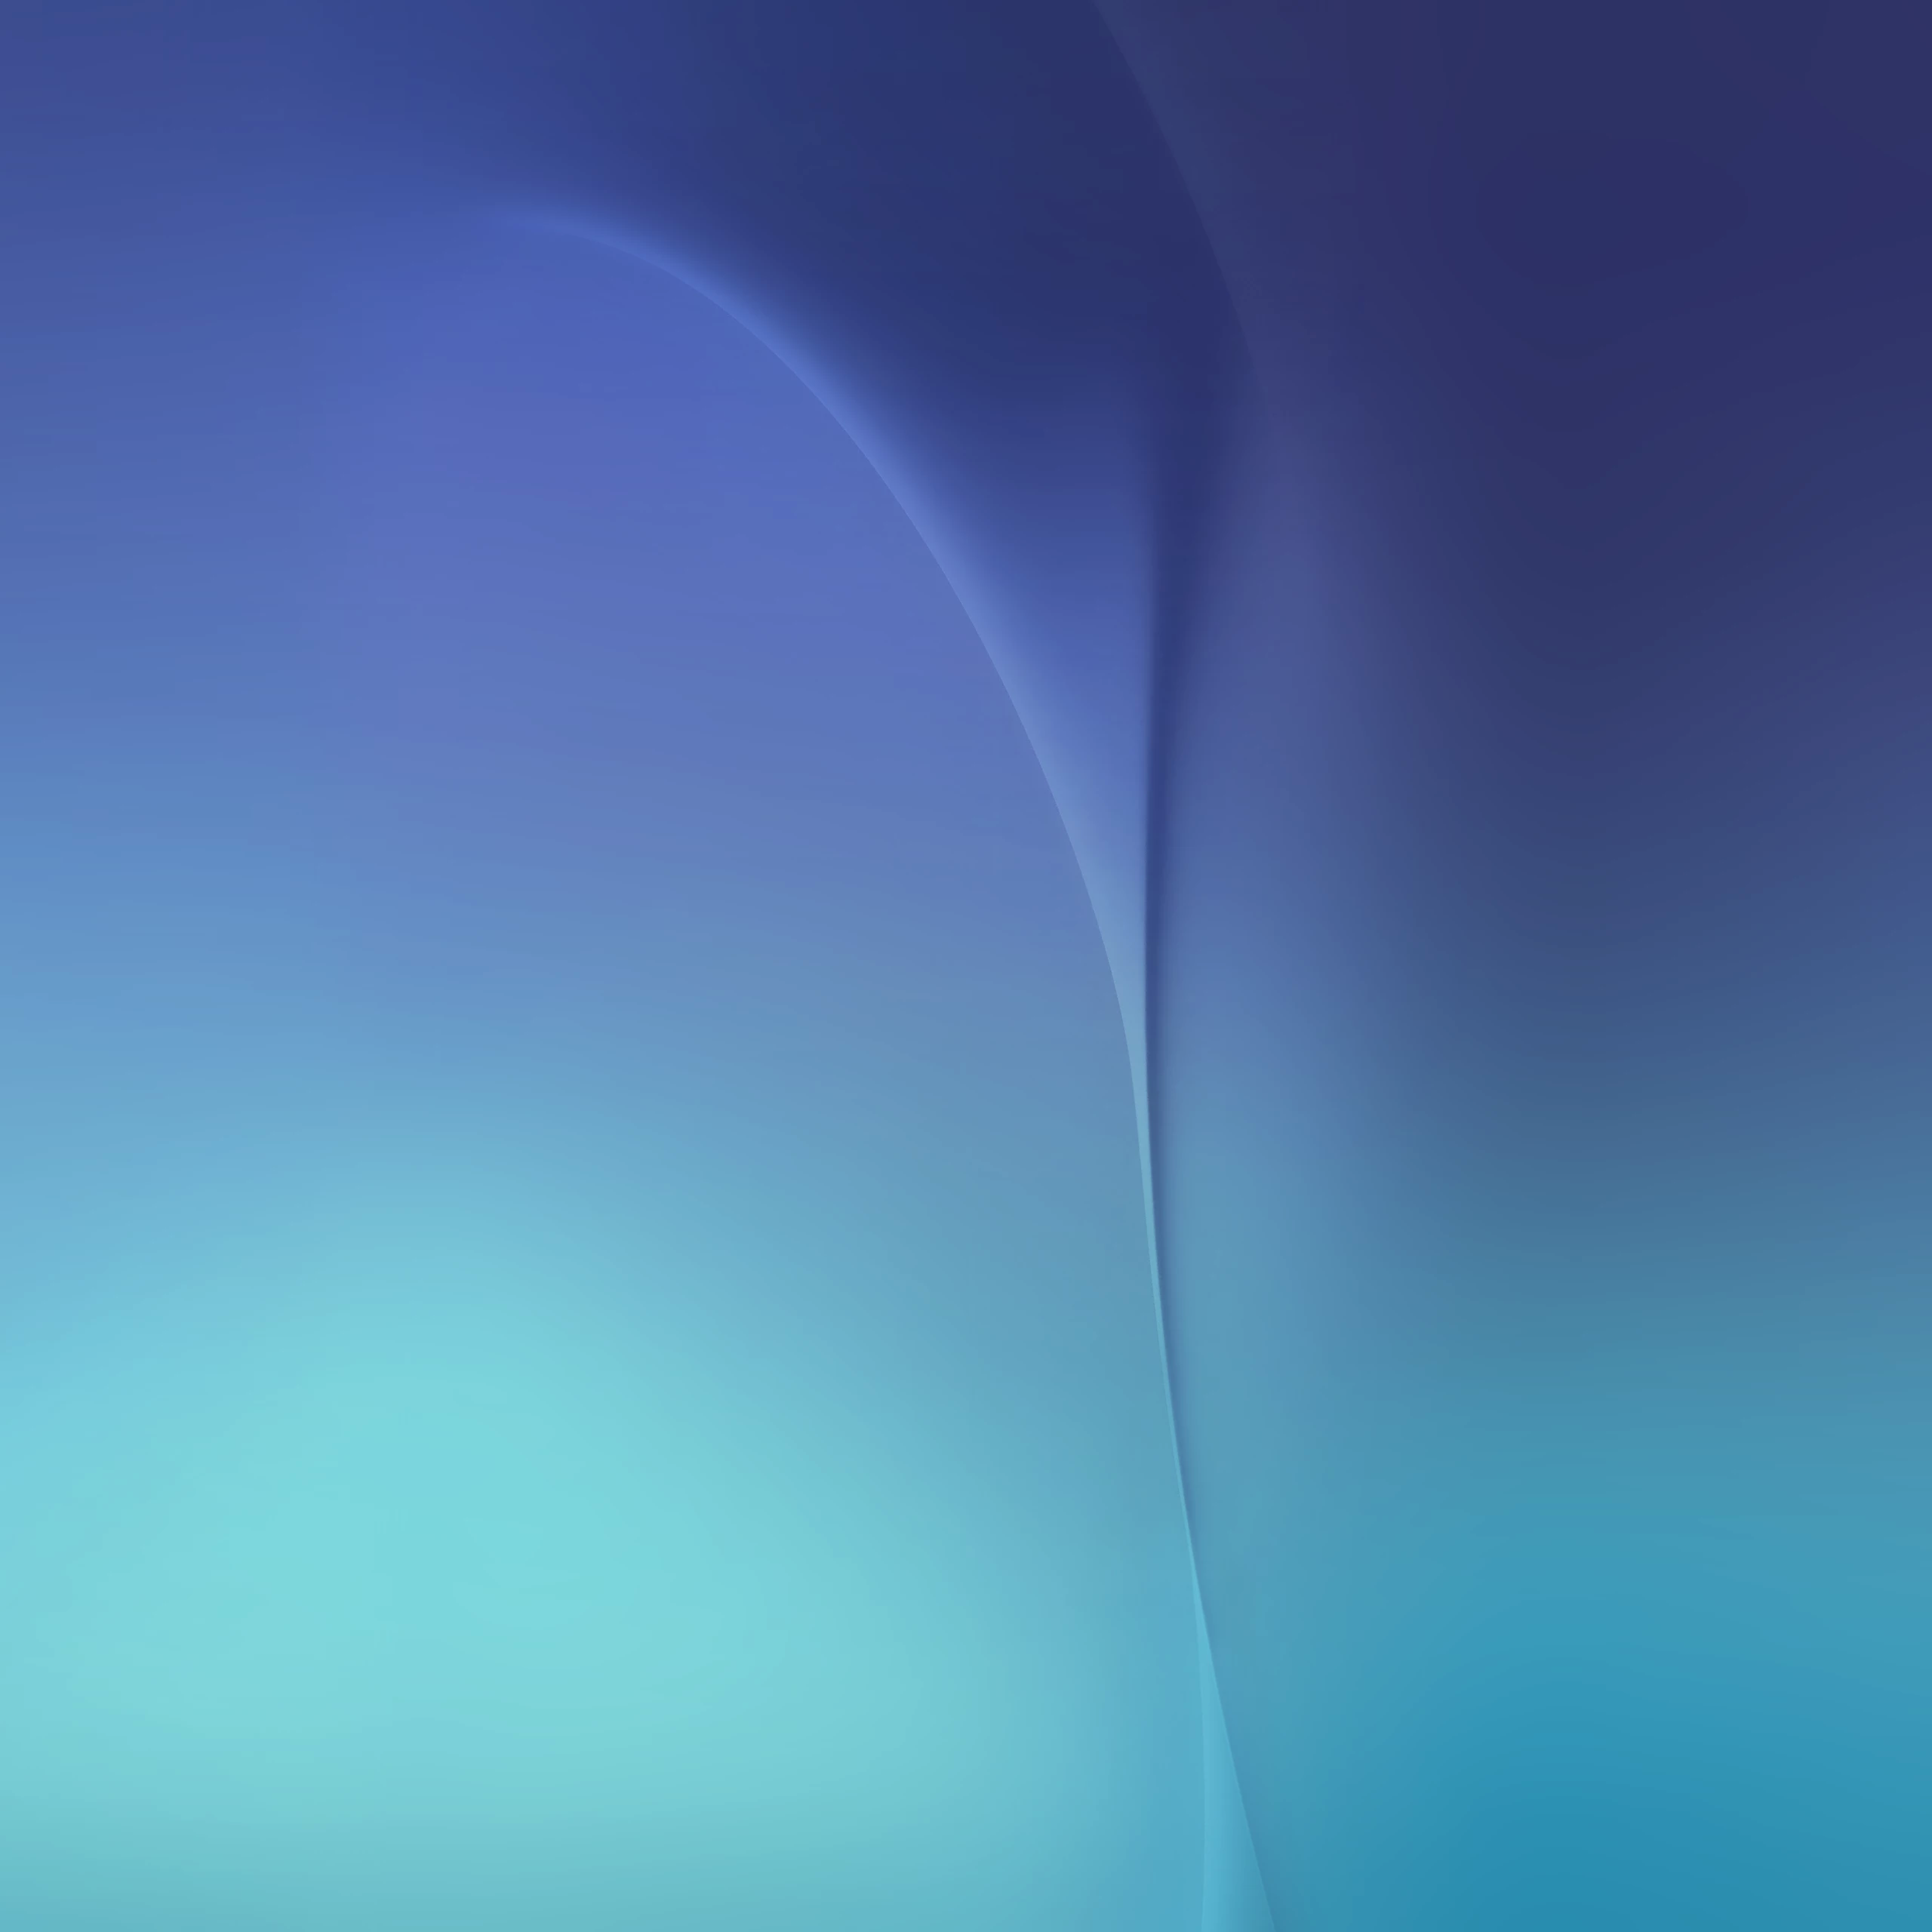 Galaxy Note 5 Wallpapers 07